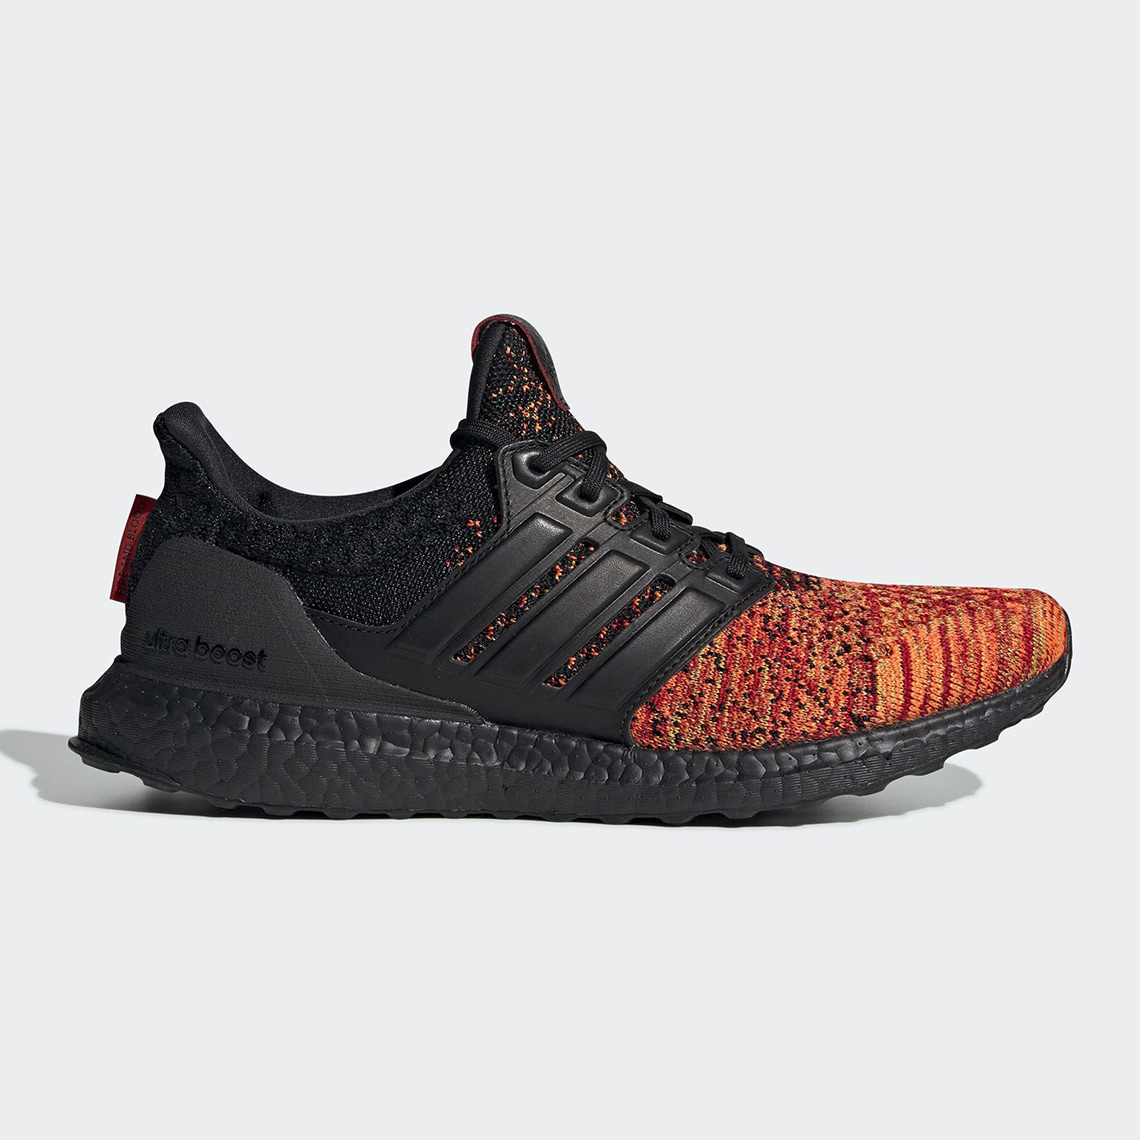 GAME OF THRONES X ADIDAS ULTRA BOOST 'TARGARYEN DRAGONS' EE3709